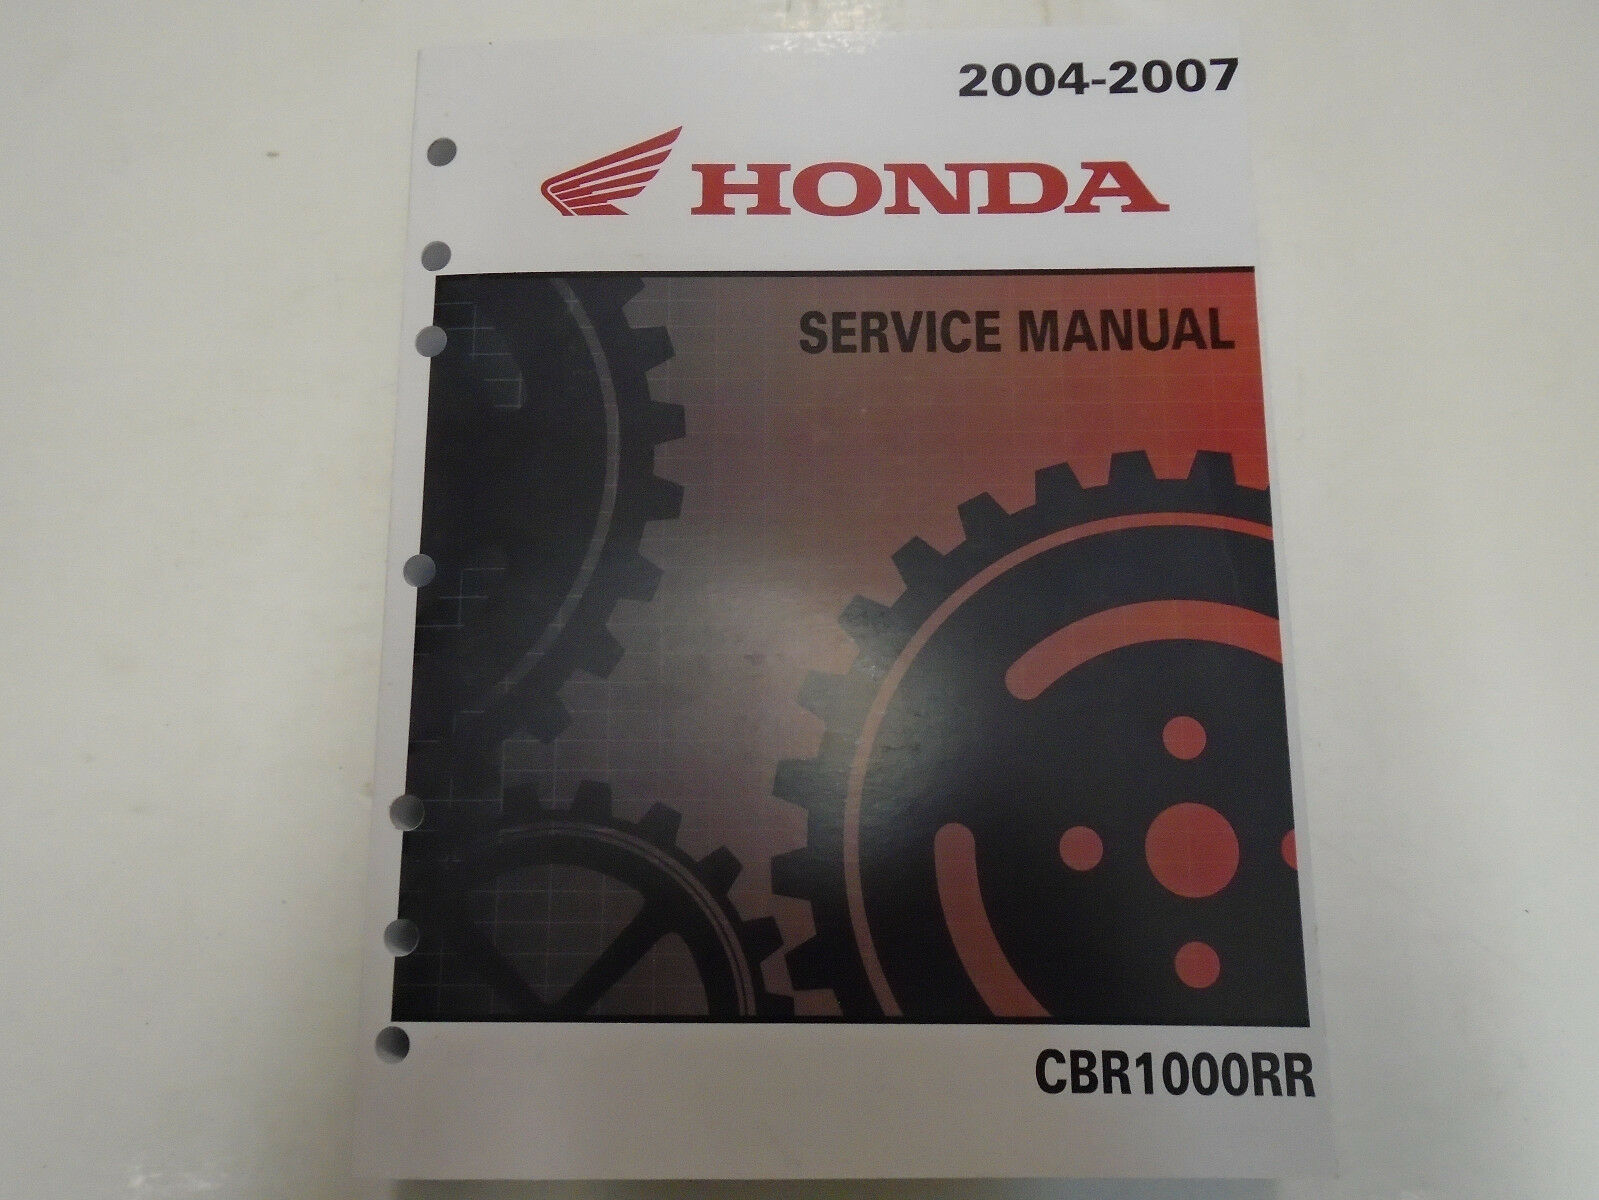 2006 2007 Honda CBR1000RR 1000RR Service Shop Repair Factory Manual OEM NEW  1 of 4Only 1 available ...